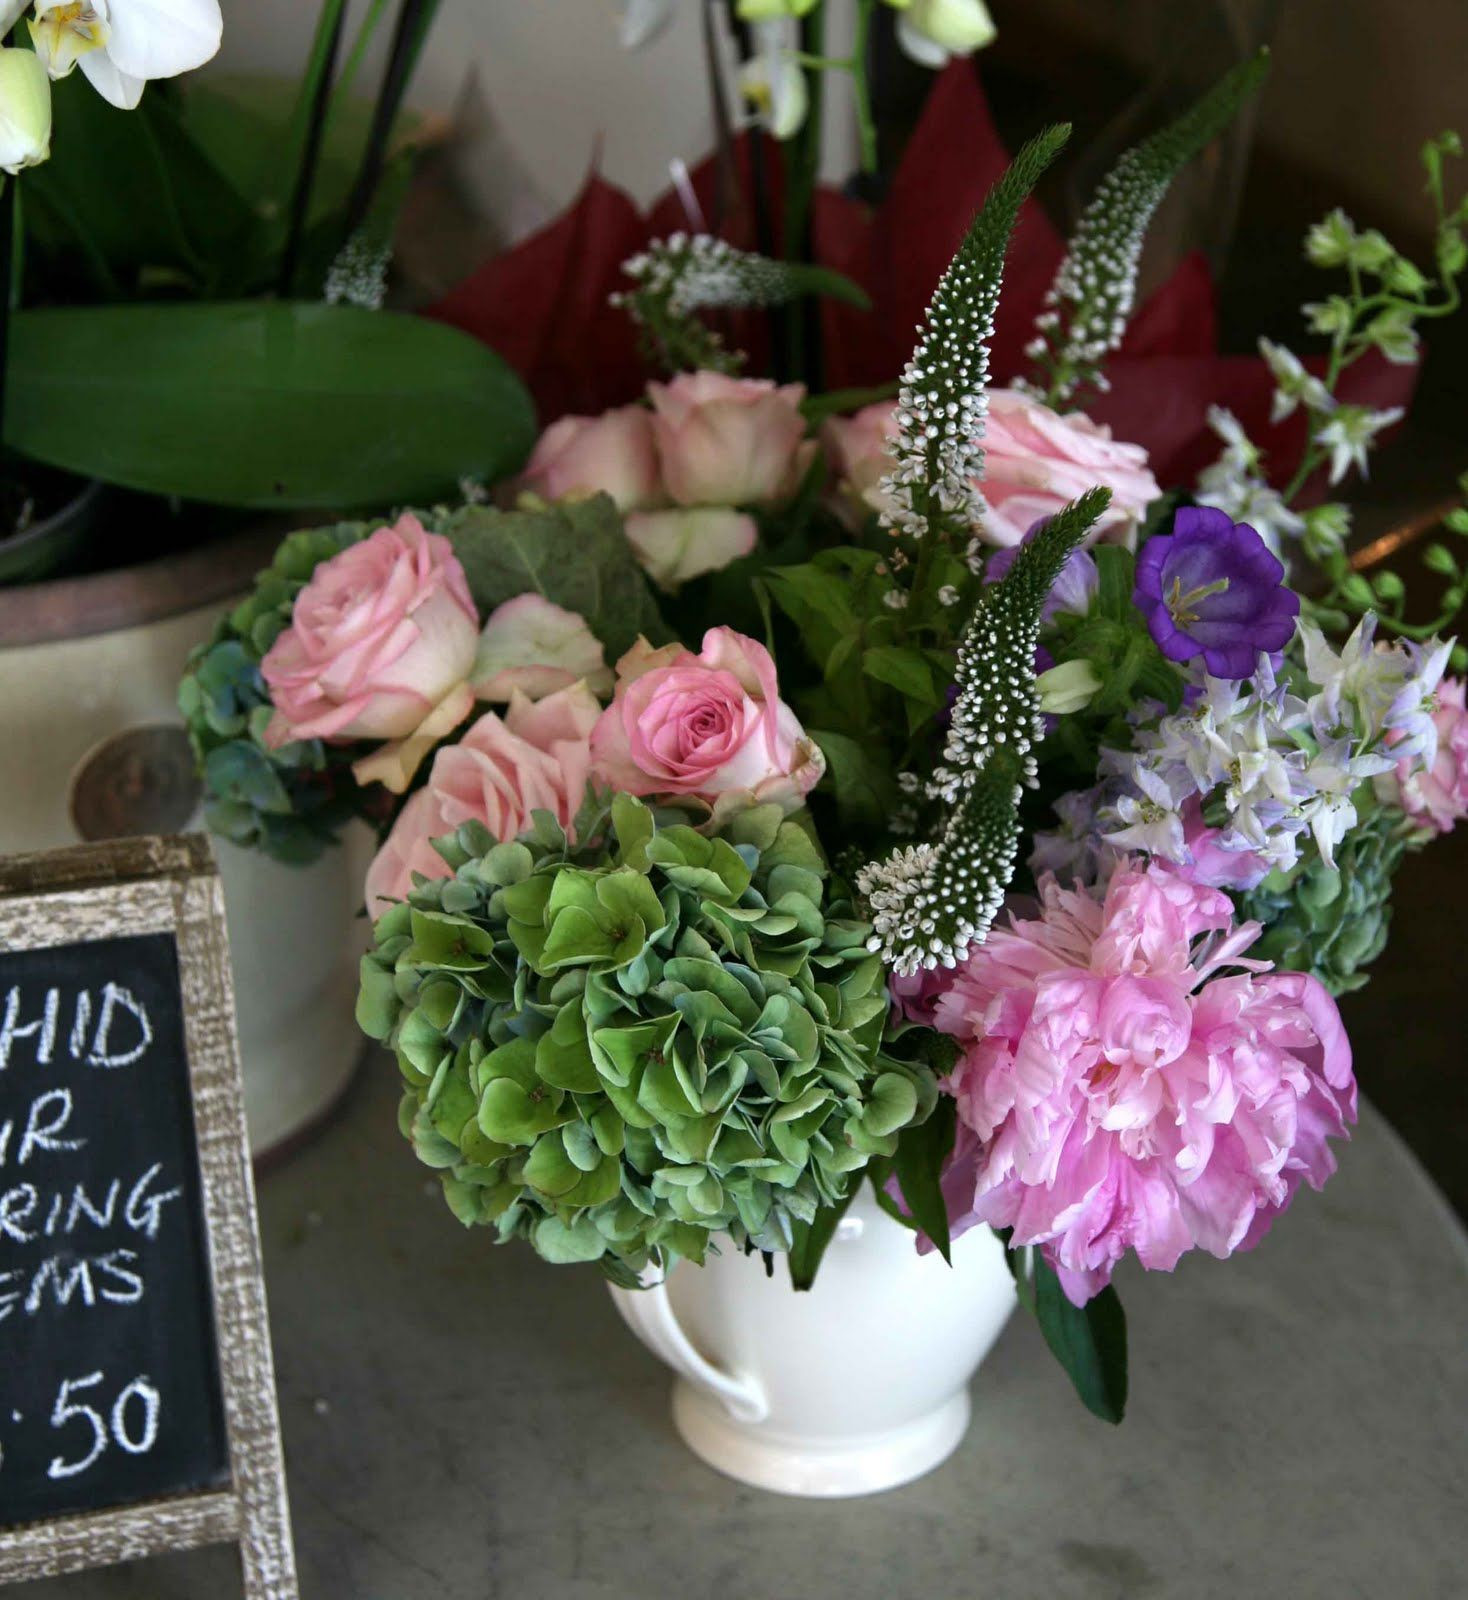 14 Trendy Flower Vases for Niches 2021 free download flower vases for niches of flower shop stories 365 days of flowers on the way to a workshop intended for first stop is ted martins flowers in tisbury so i can collect the flowers i have orde